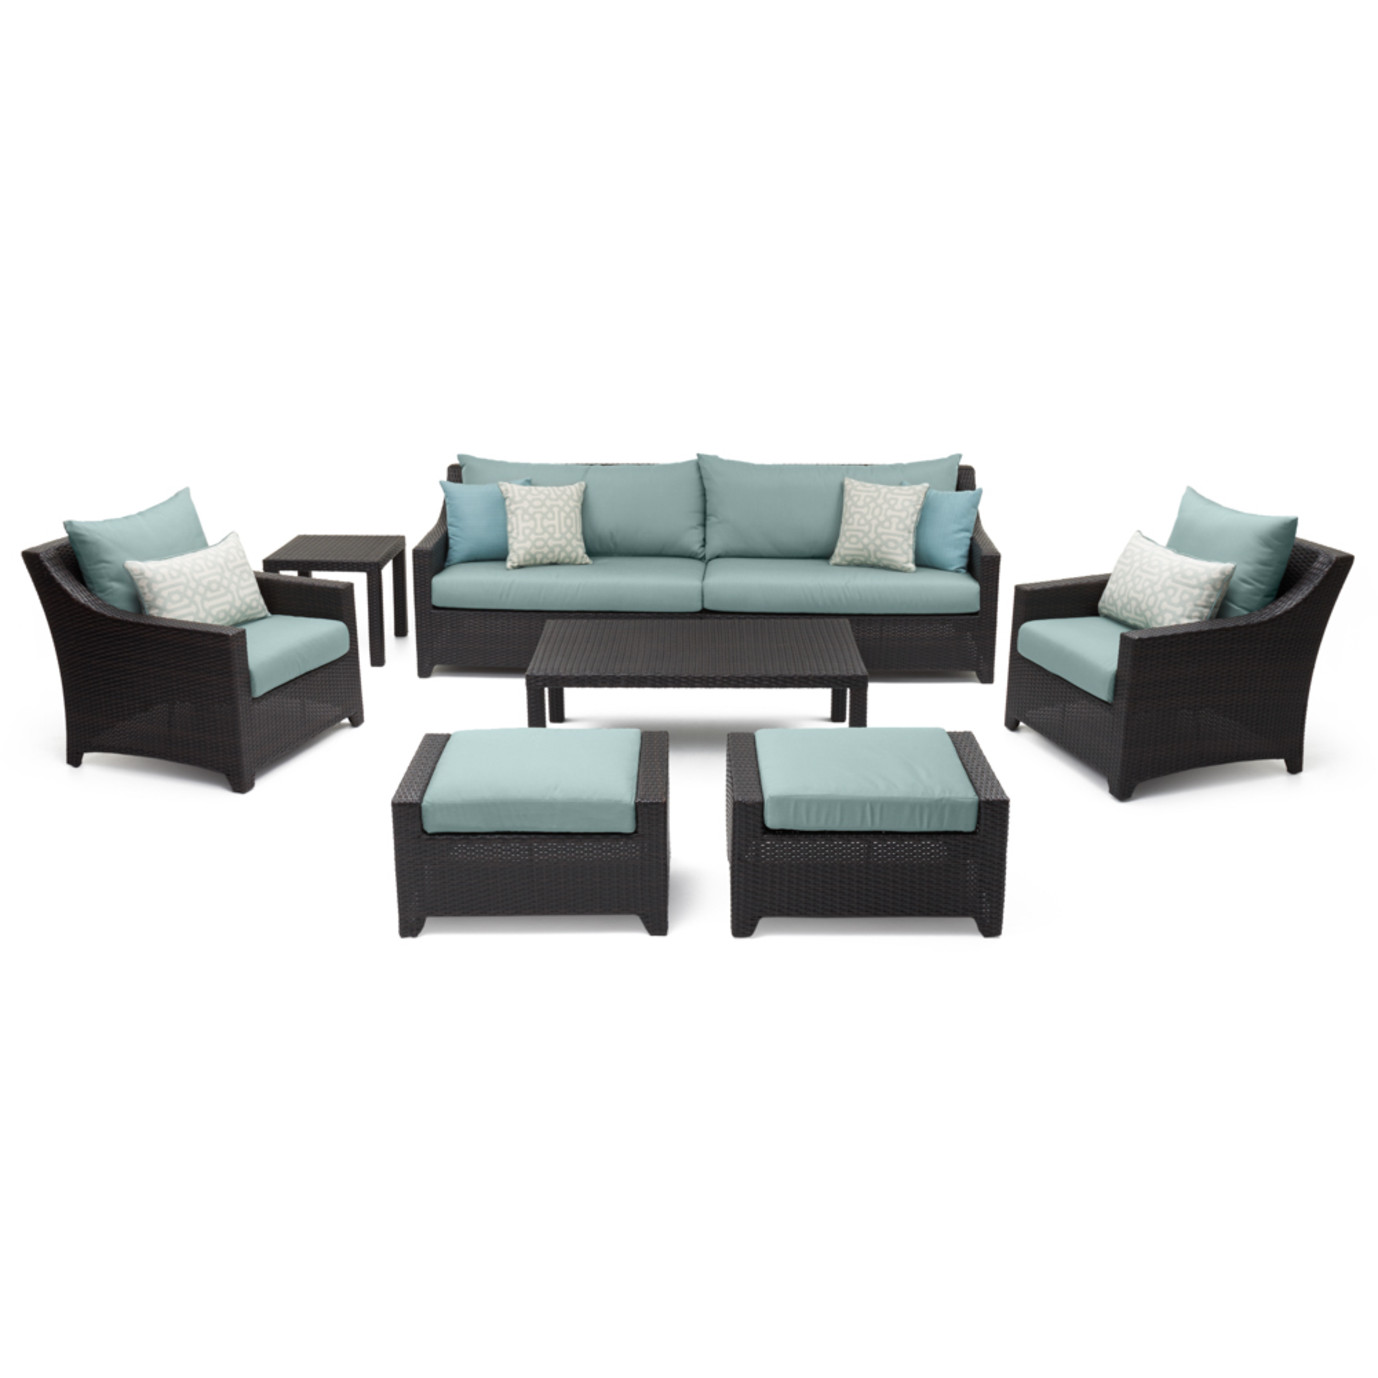 Deco™ 8pc Sofa and Club Chair Set - Spa Blue